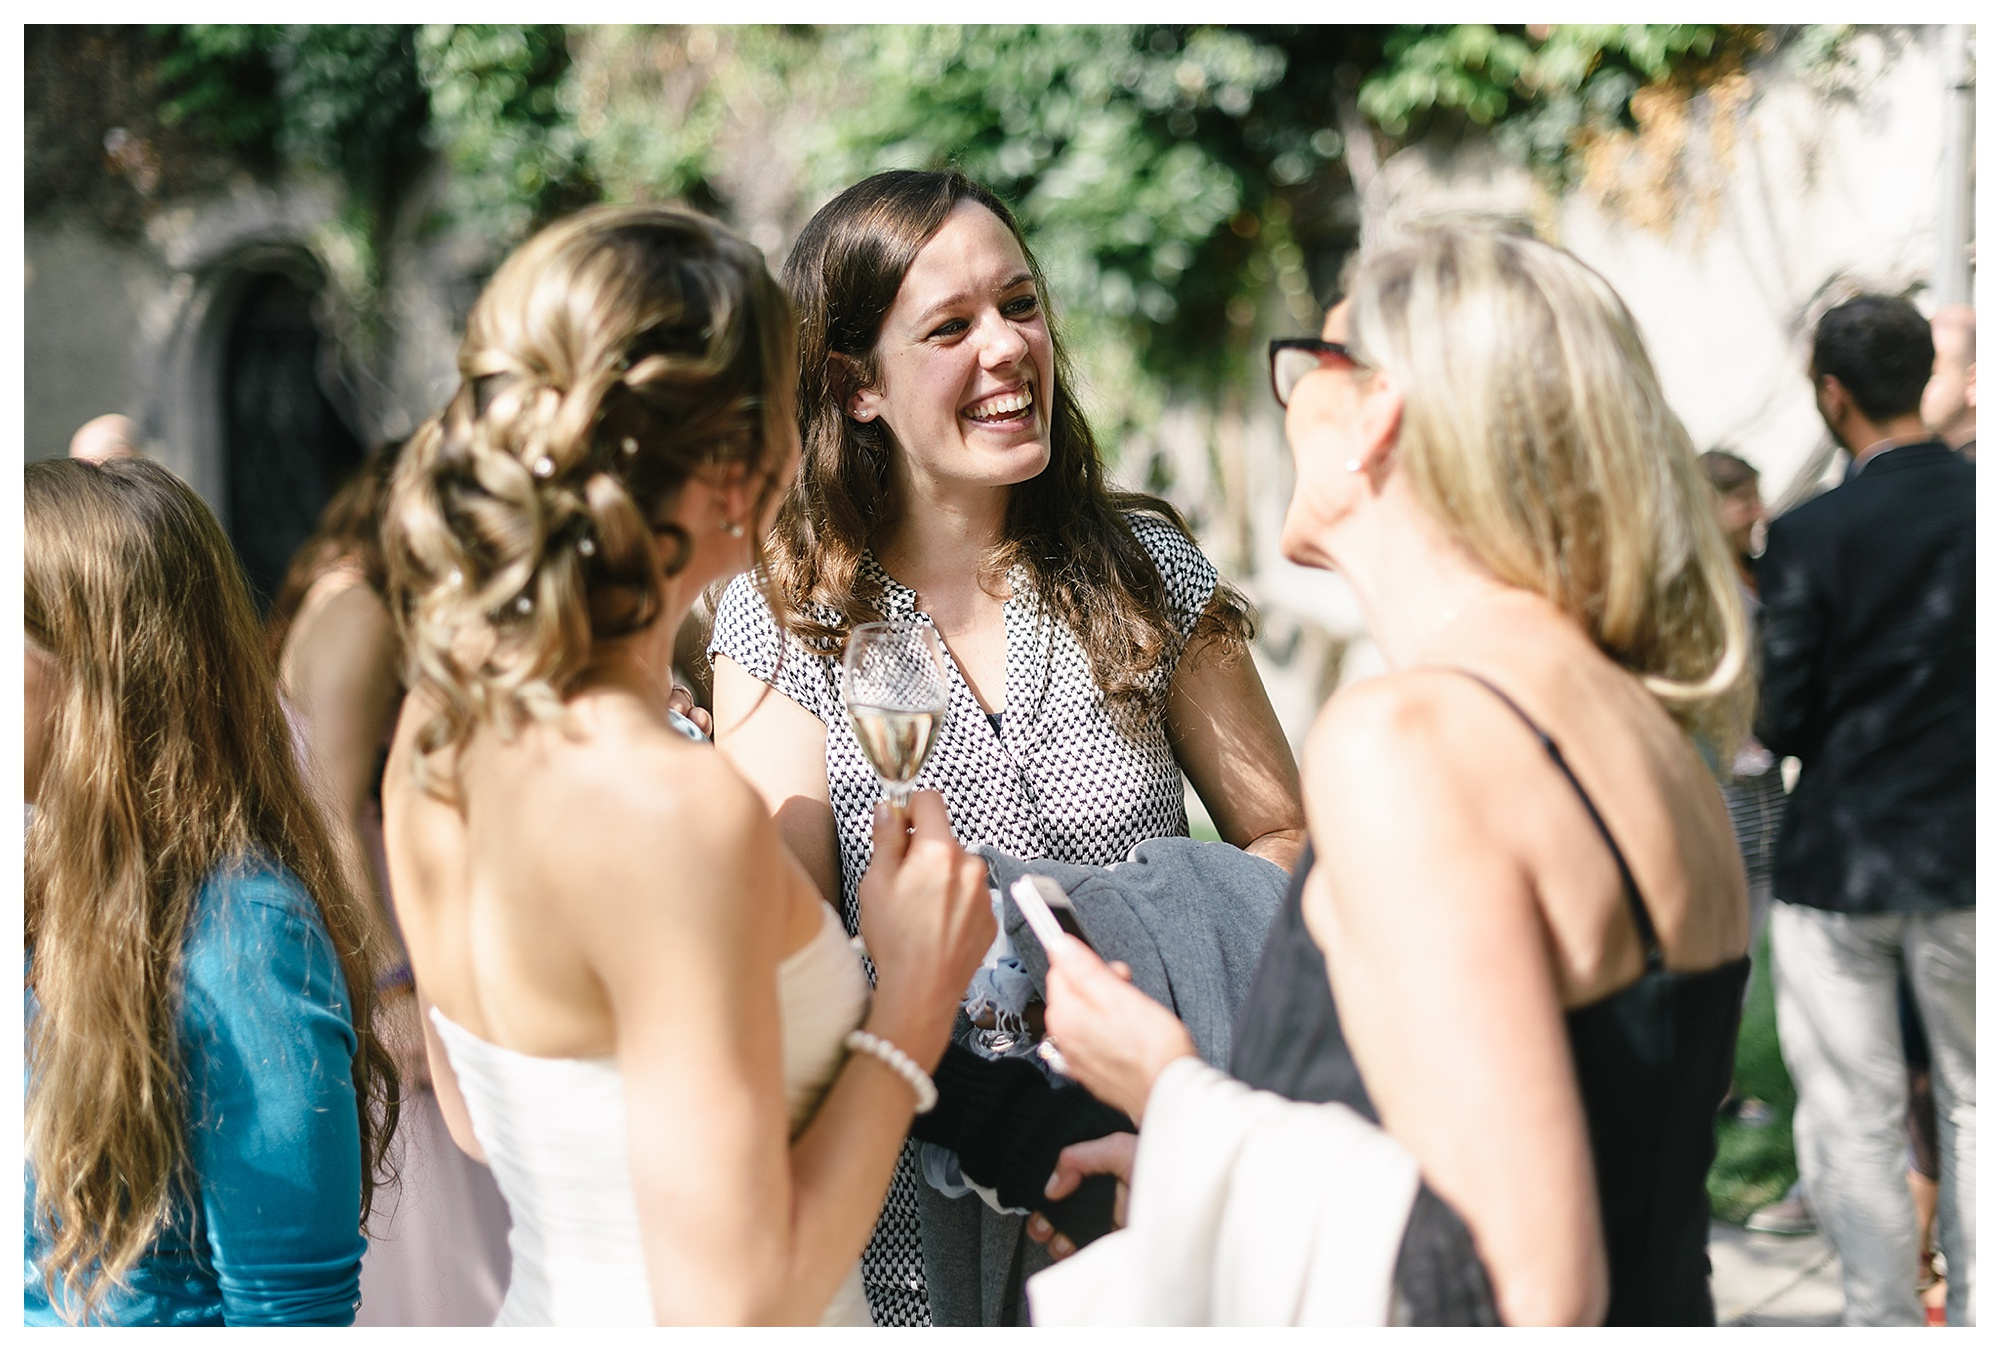 Fotograf Konstanz - Hochzeitsreportage Konstanz Raphael Nicole Elmar Feuerbacher Photography Hochzeit Portrait 12 - Wedding in Constance at Lake of Constance  - 46 -